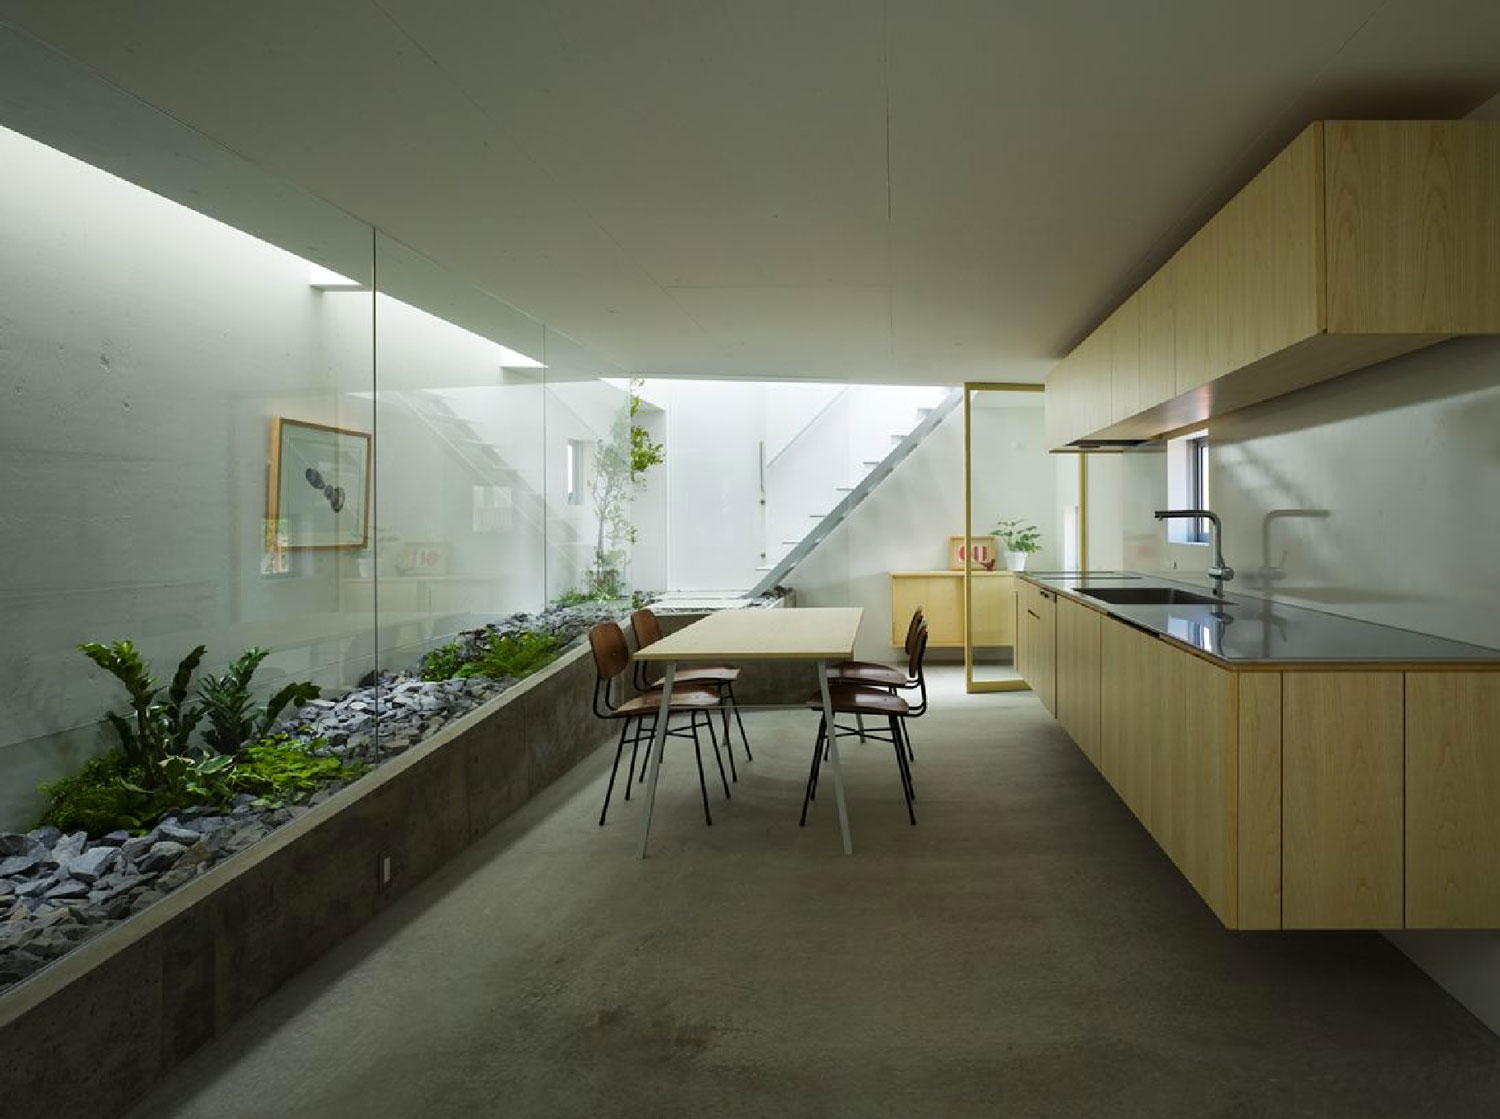 House in Moriyama by Suppose Design Office | Yellowtrace